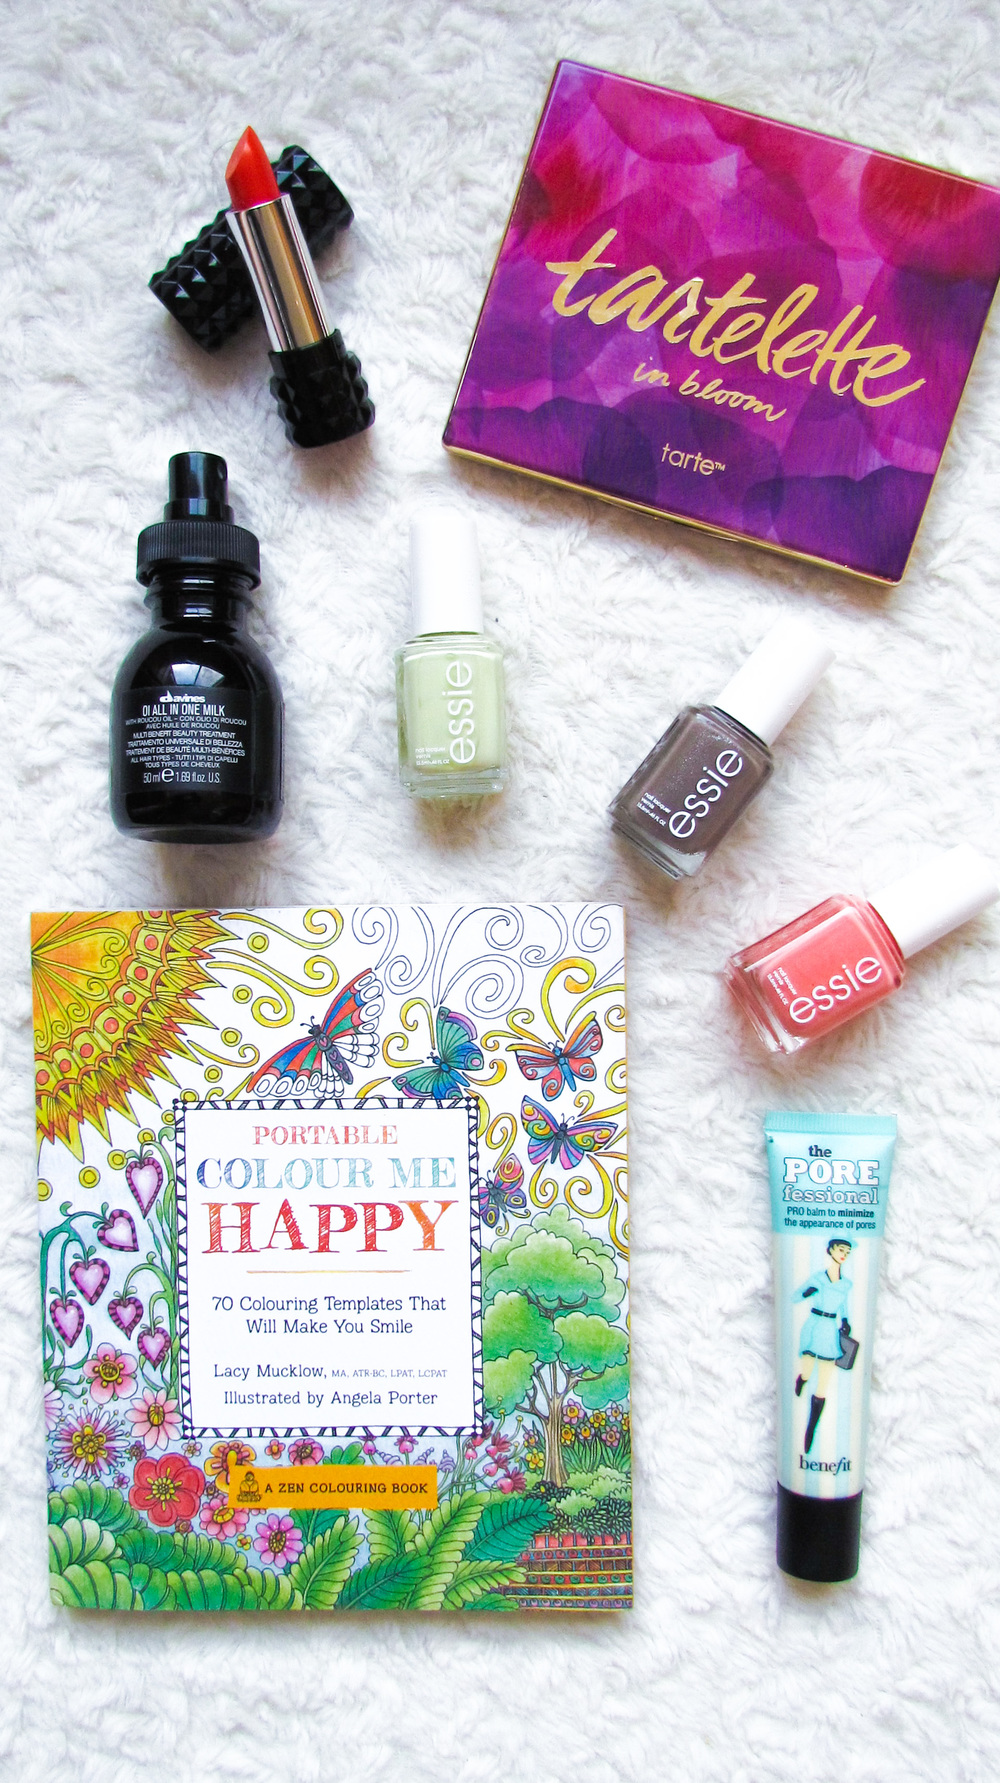 April Favorites - Essie Polish in Tart Deco, Mochachino, & Chillato, Benefit Porefessional, Kat Von D Lipstick, Rocksbox, Adult Coloring Books, Tarte In Bloom Palette